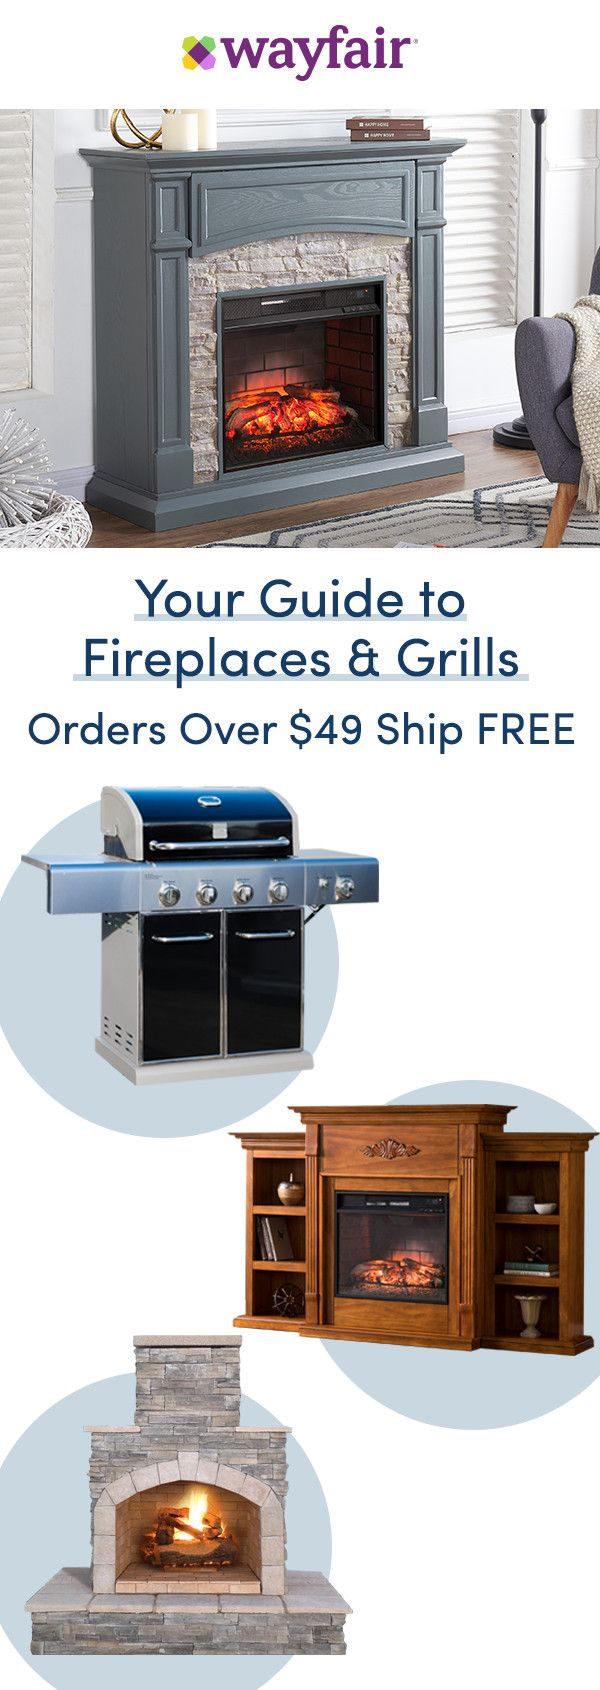 Sign up for access to exclusive sales, all at up to 70% OFF! Get ready to get cozy with fireplace TV stands and electric fireplaces in colorful and charming styles. From top-rated grills in bold colors, to smokers and beyond, you'll find everything you need to relax and entertain here. Enjoy FREE shipping on all orders over $49 at Wayfair!